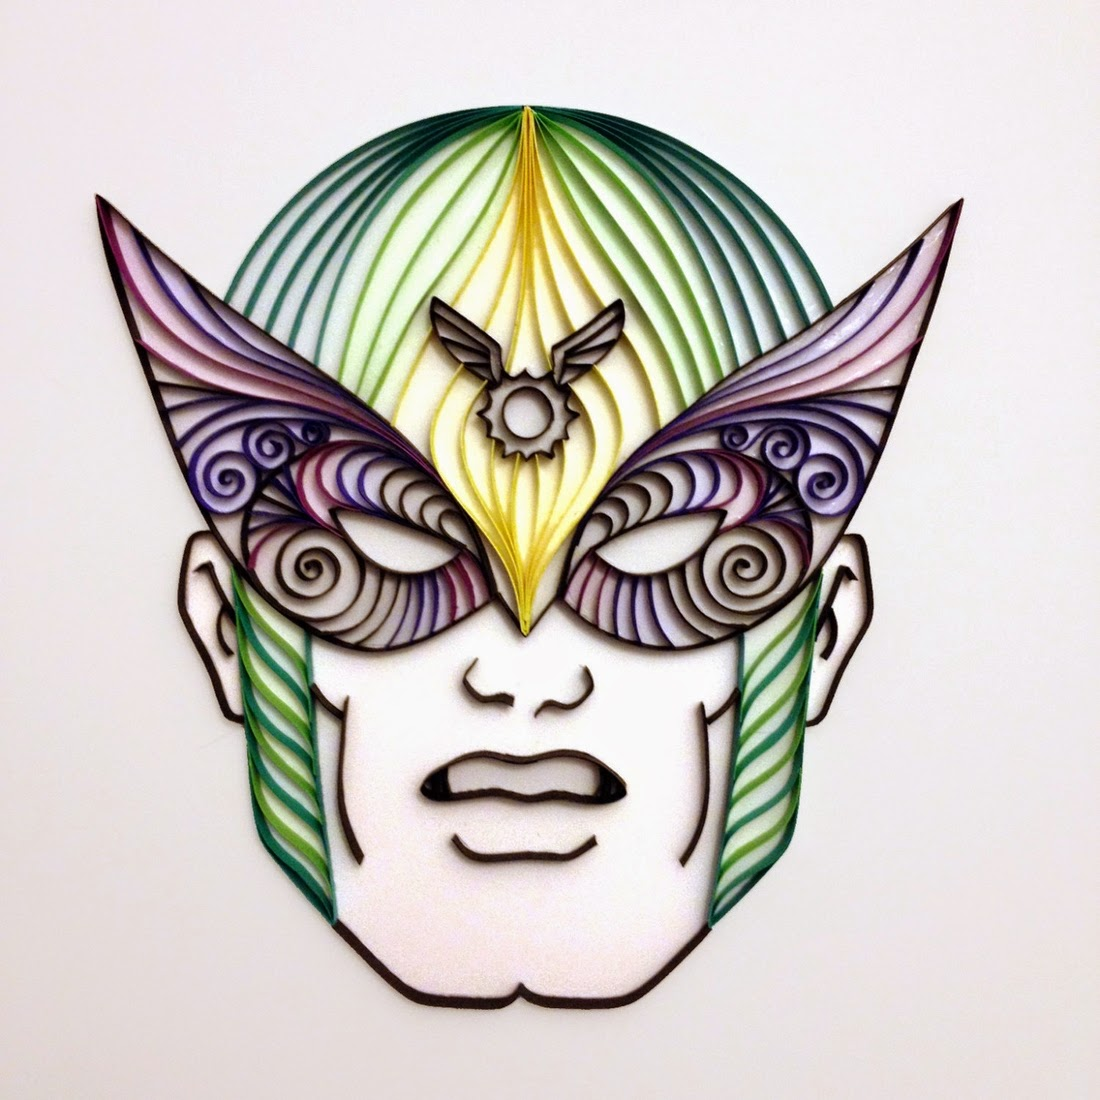 15-Harvey-Birdman-Alia-AliaDesign-Sci-Fi-and-Superhero-Paper-Quilling-www-designstack-co